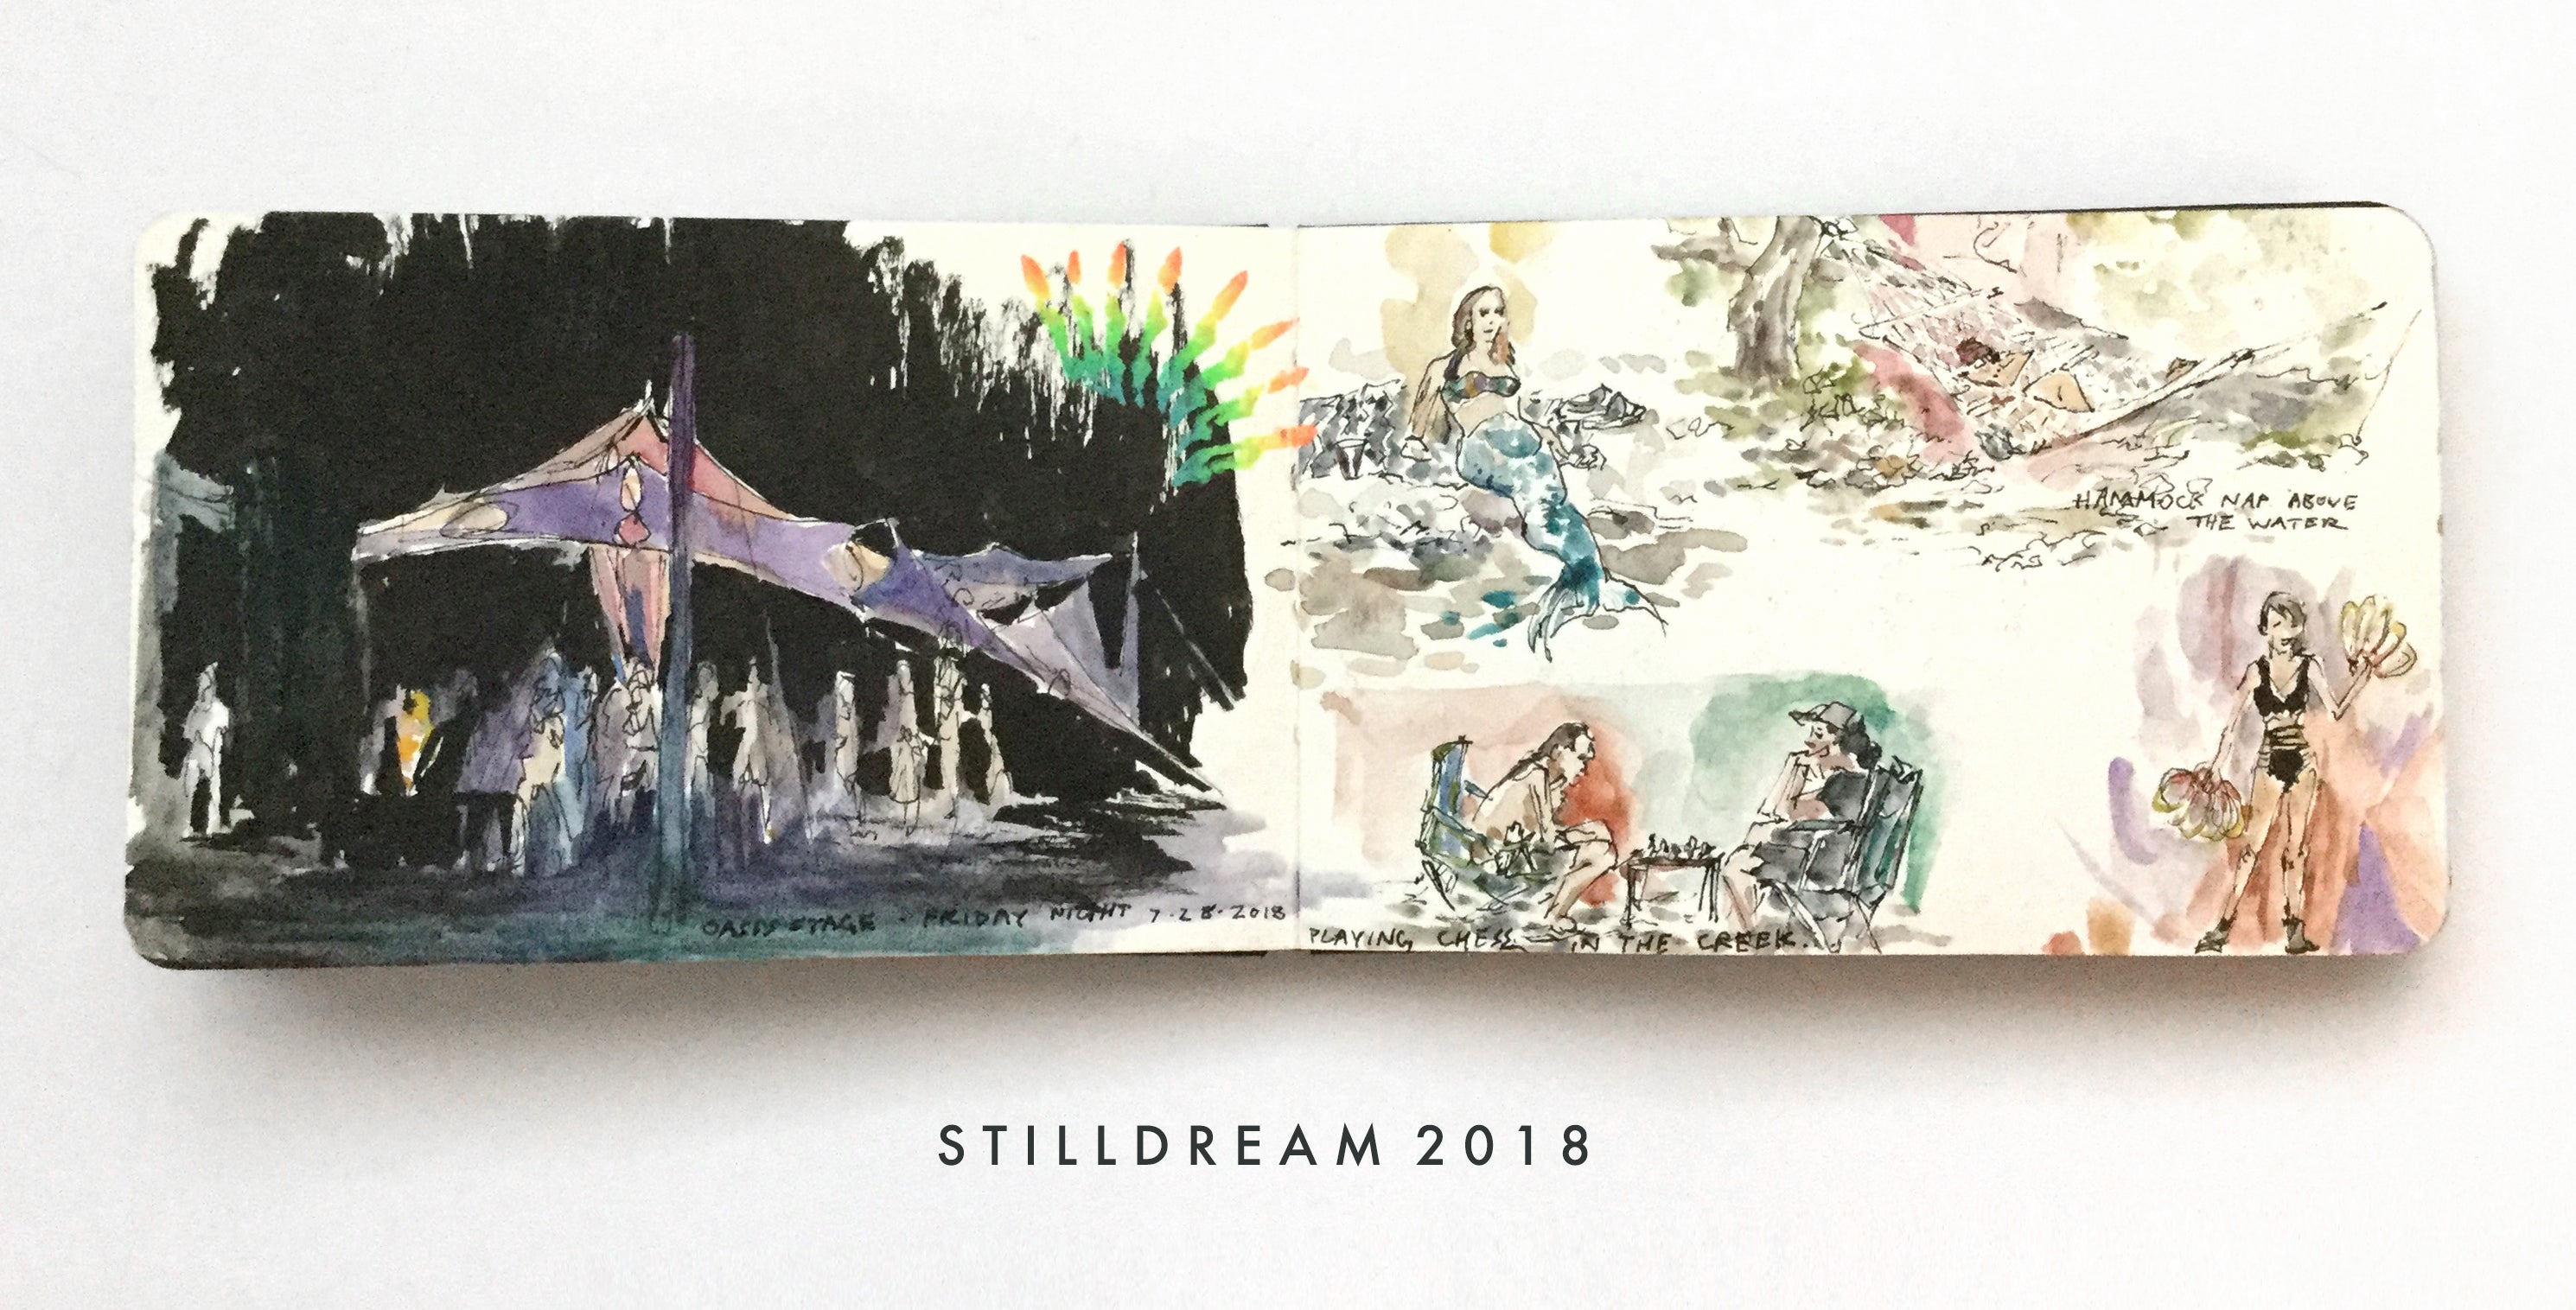 Soul Journal - Summer Festivals 2018 - Stilldream 2018 - PREORDER